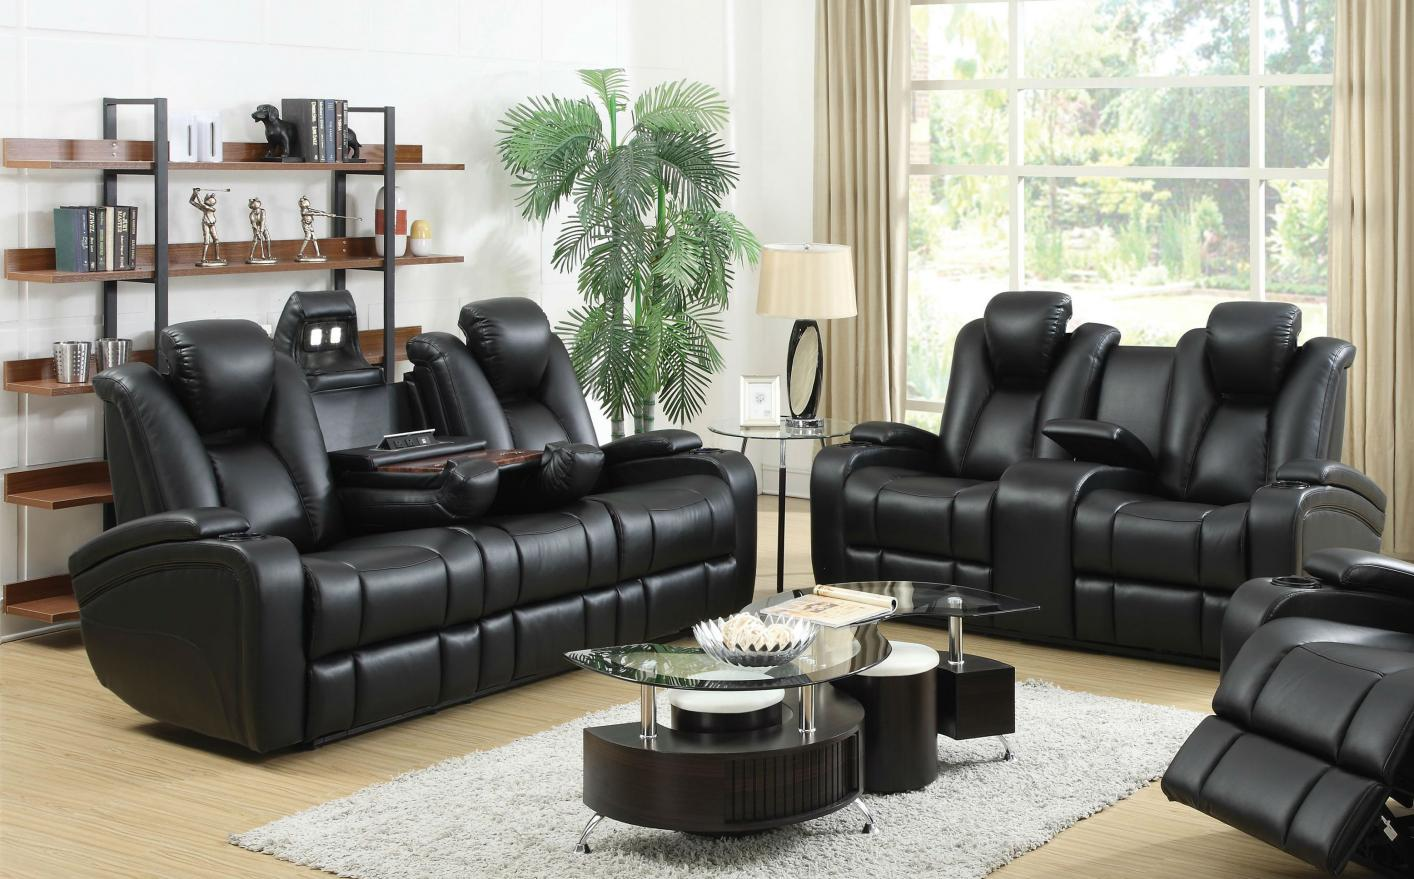 Coaster 601741p 601742p black leather power reclining sofa and loveseat set steal a sofa Leather sofa and loveseat recliner